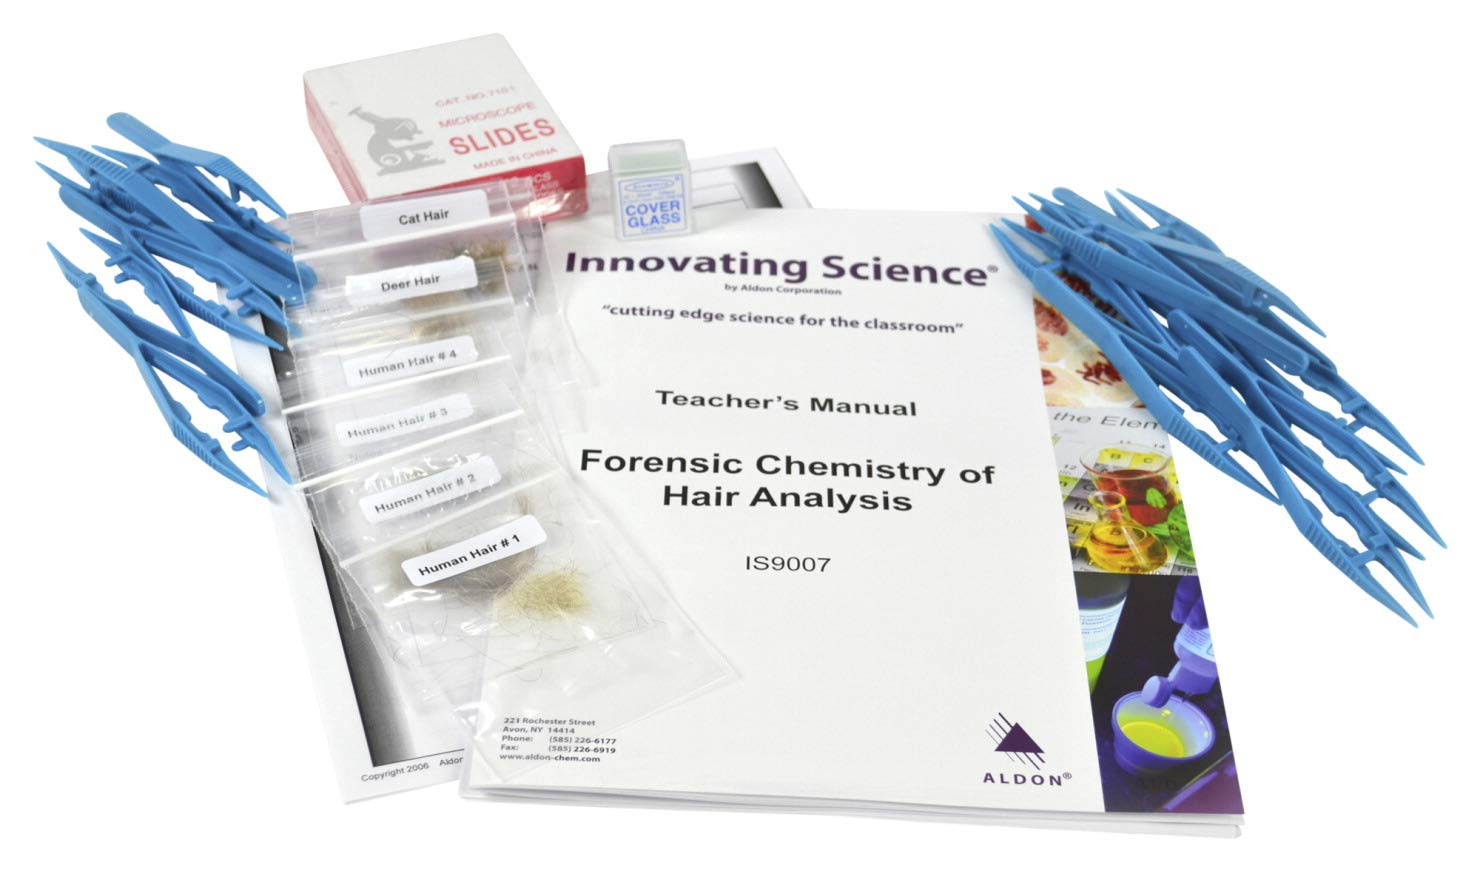 Innovating Science Forensic Chemistry of Hair Analysis Kit by Innovating Science